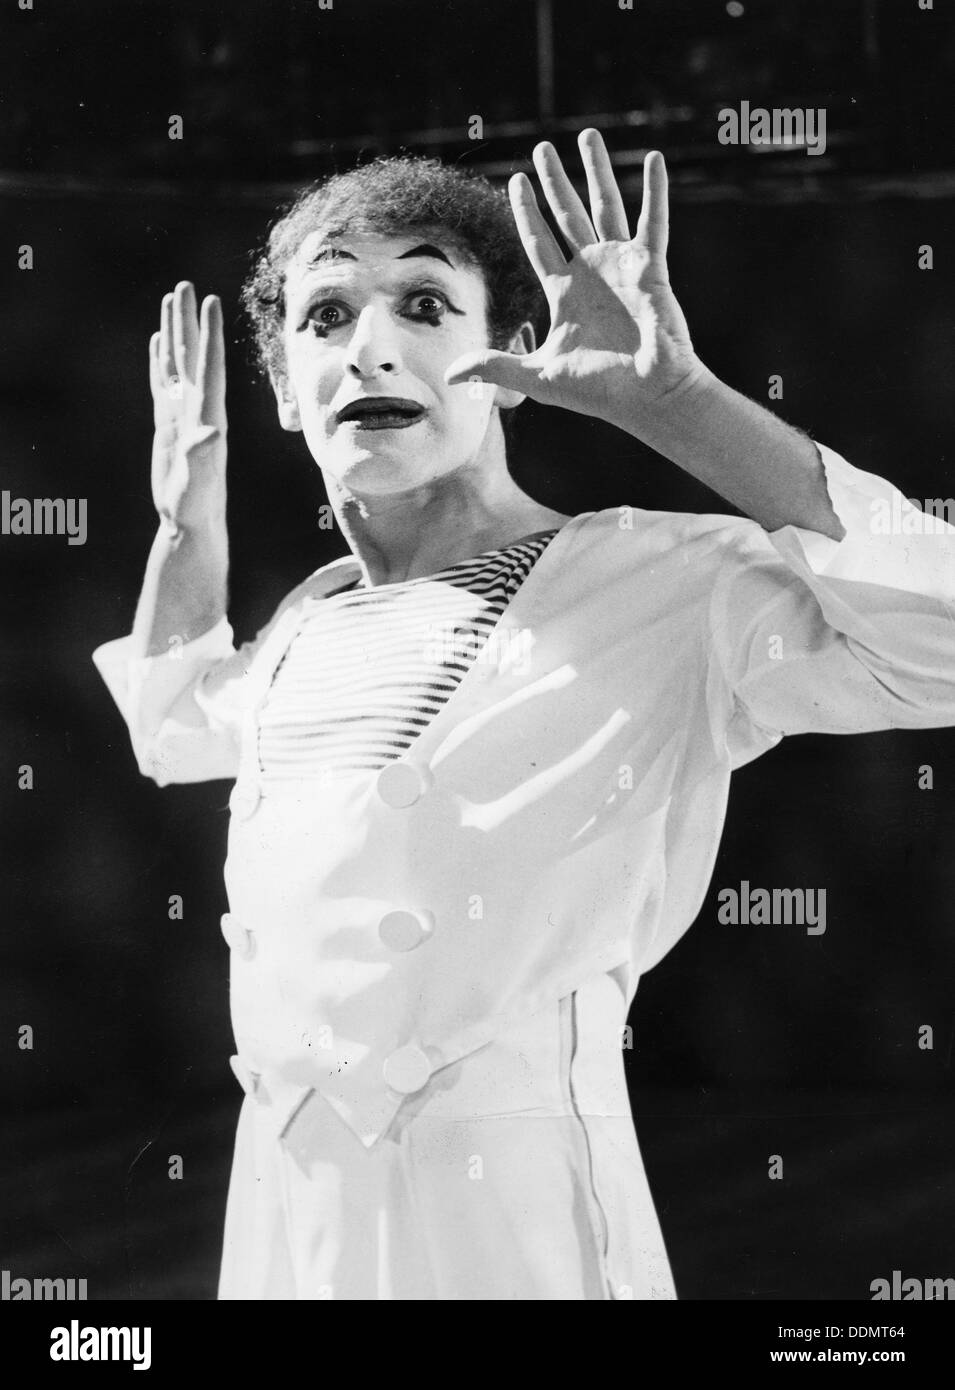 Marcel Marceau (1923-1999), French mime artist, 1967. - Stock Image